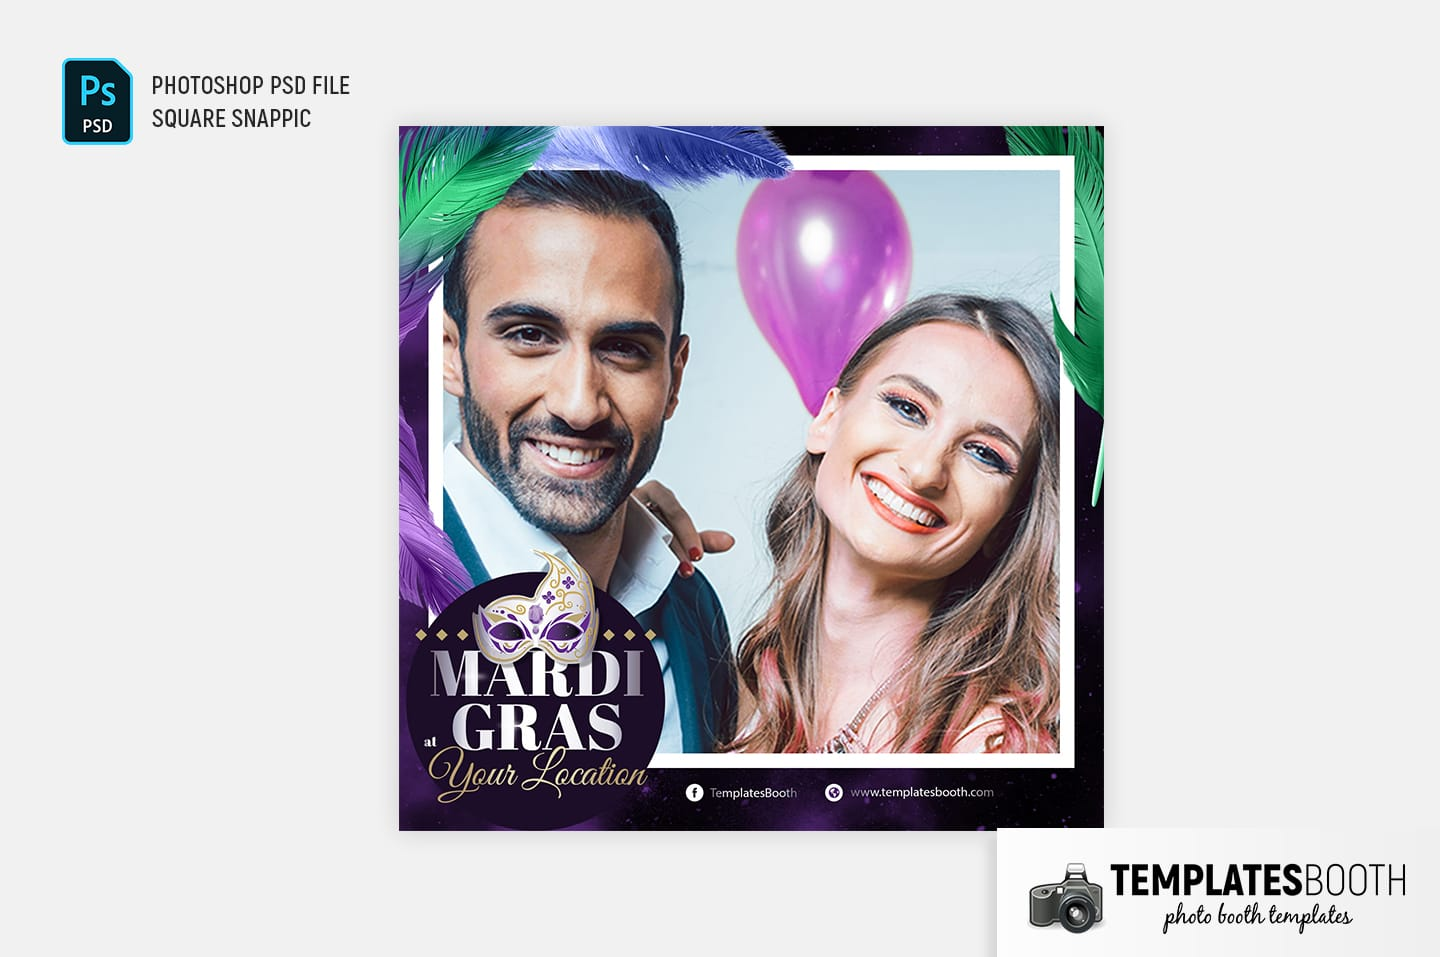 Mardi Gras Photo Booth Template (Snappic template)